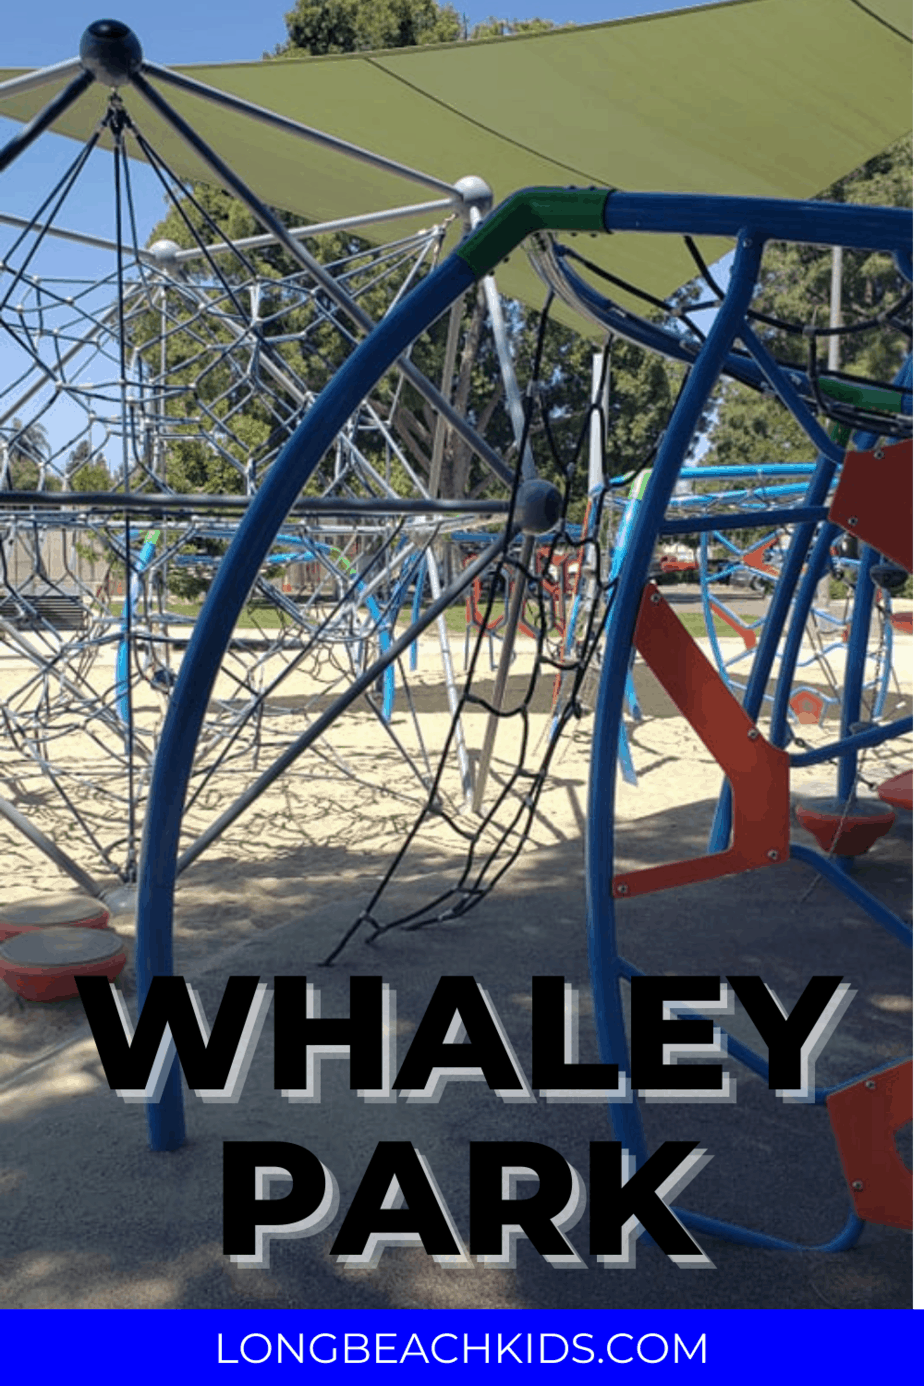 climbing structure; text: whaley park